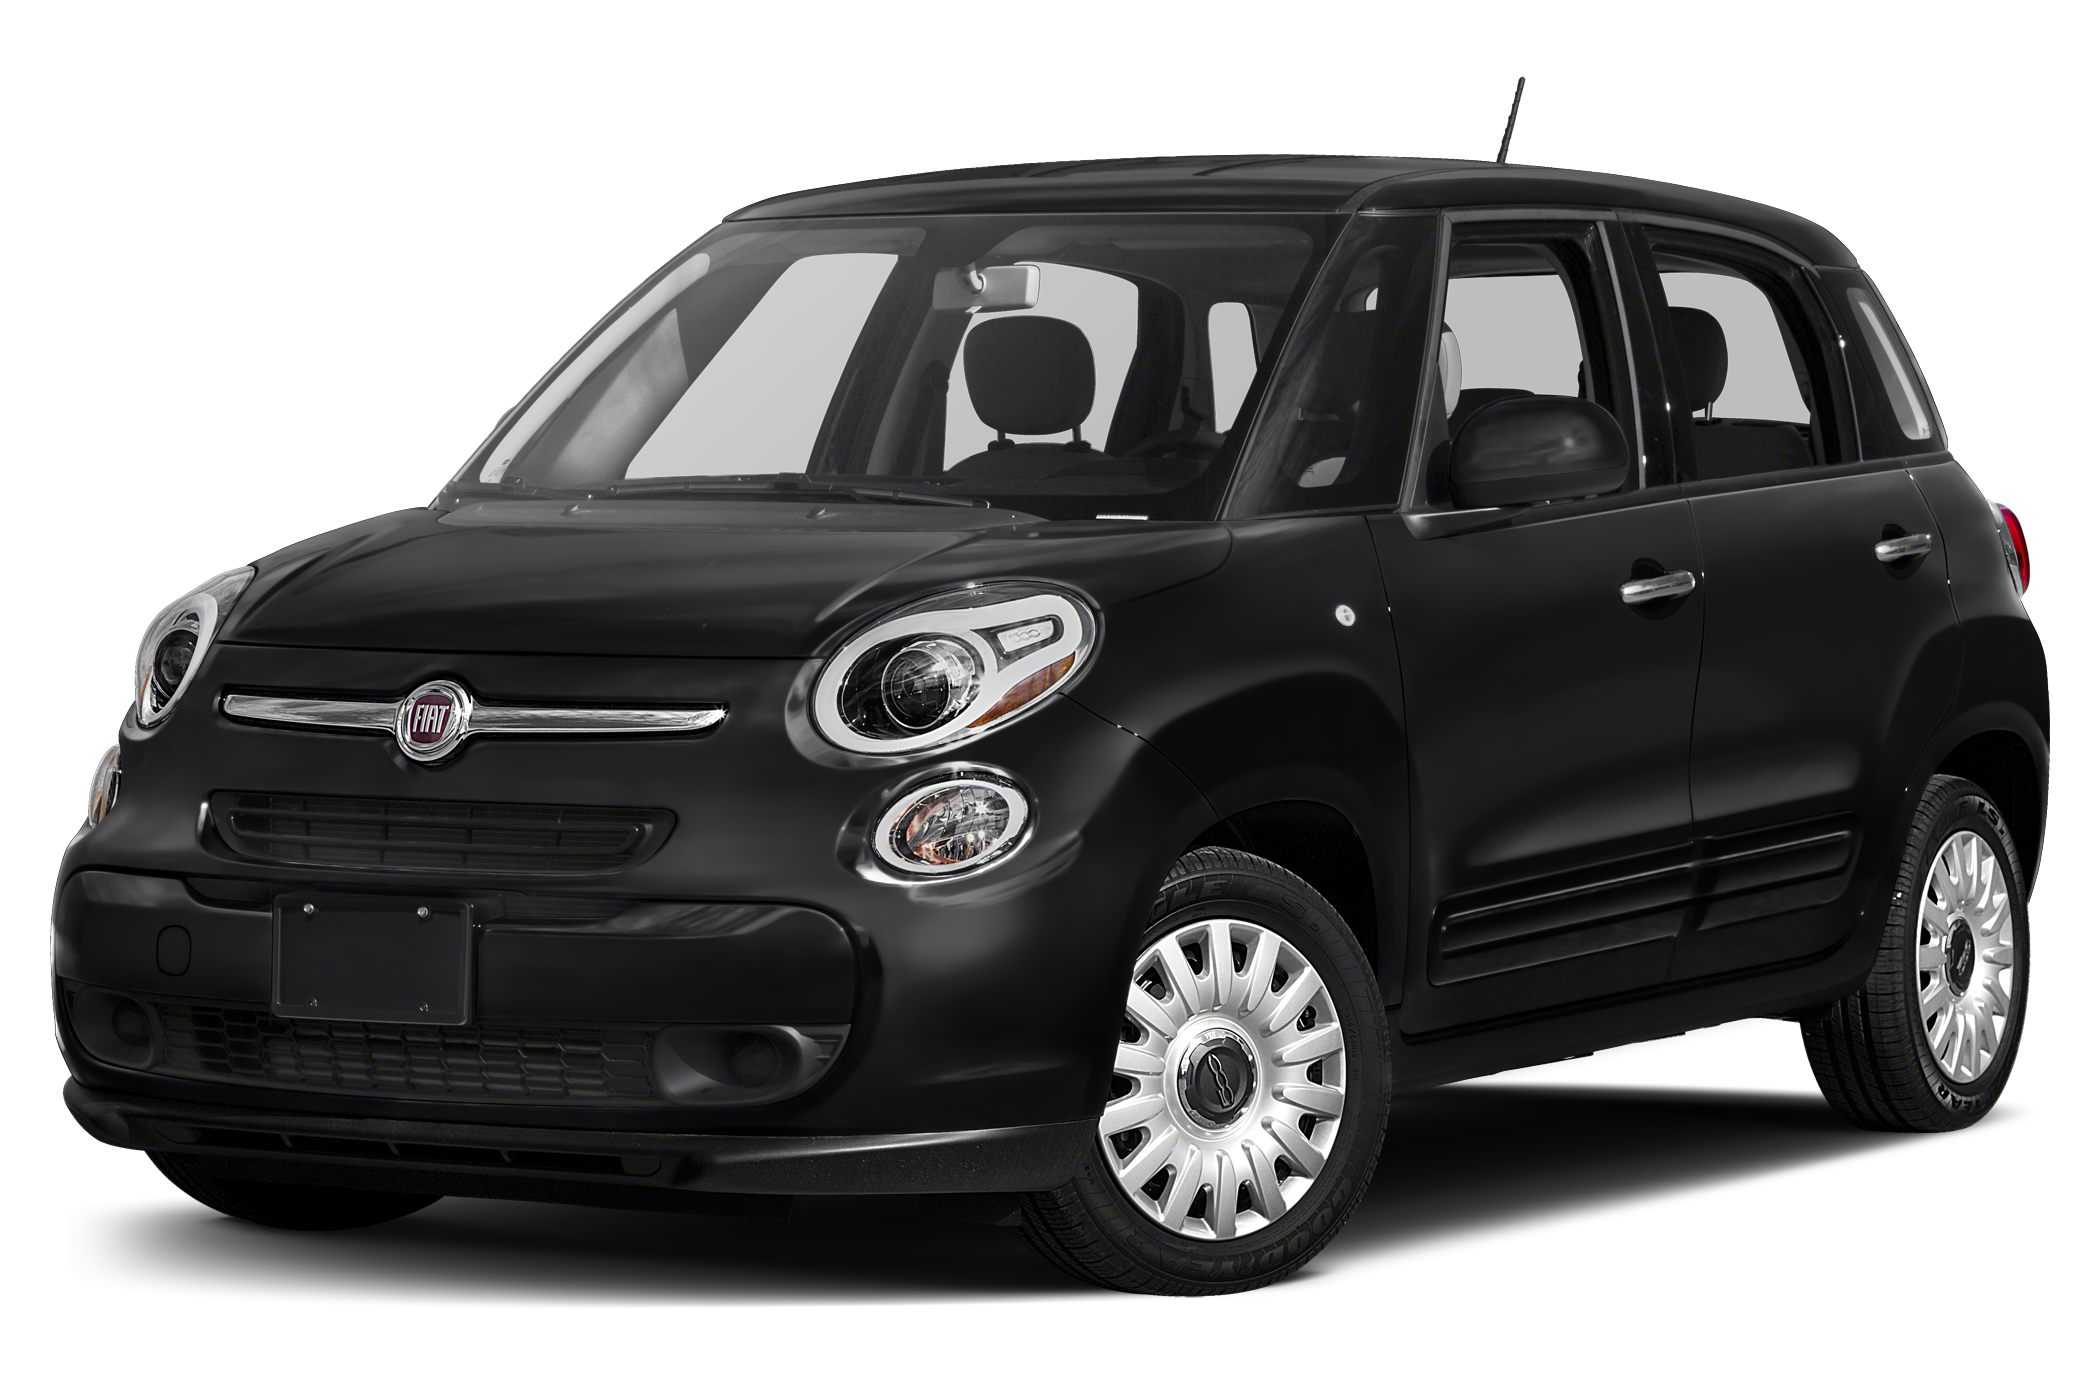 fiat recalling 2014 500l over dual clutch transmission. Black Bedroom Furniture Sets. Home Design Ideas